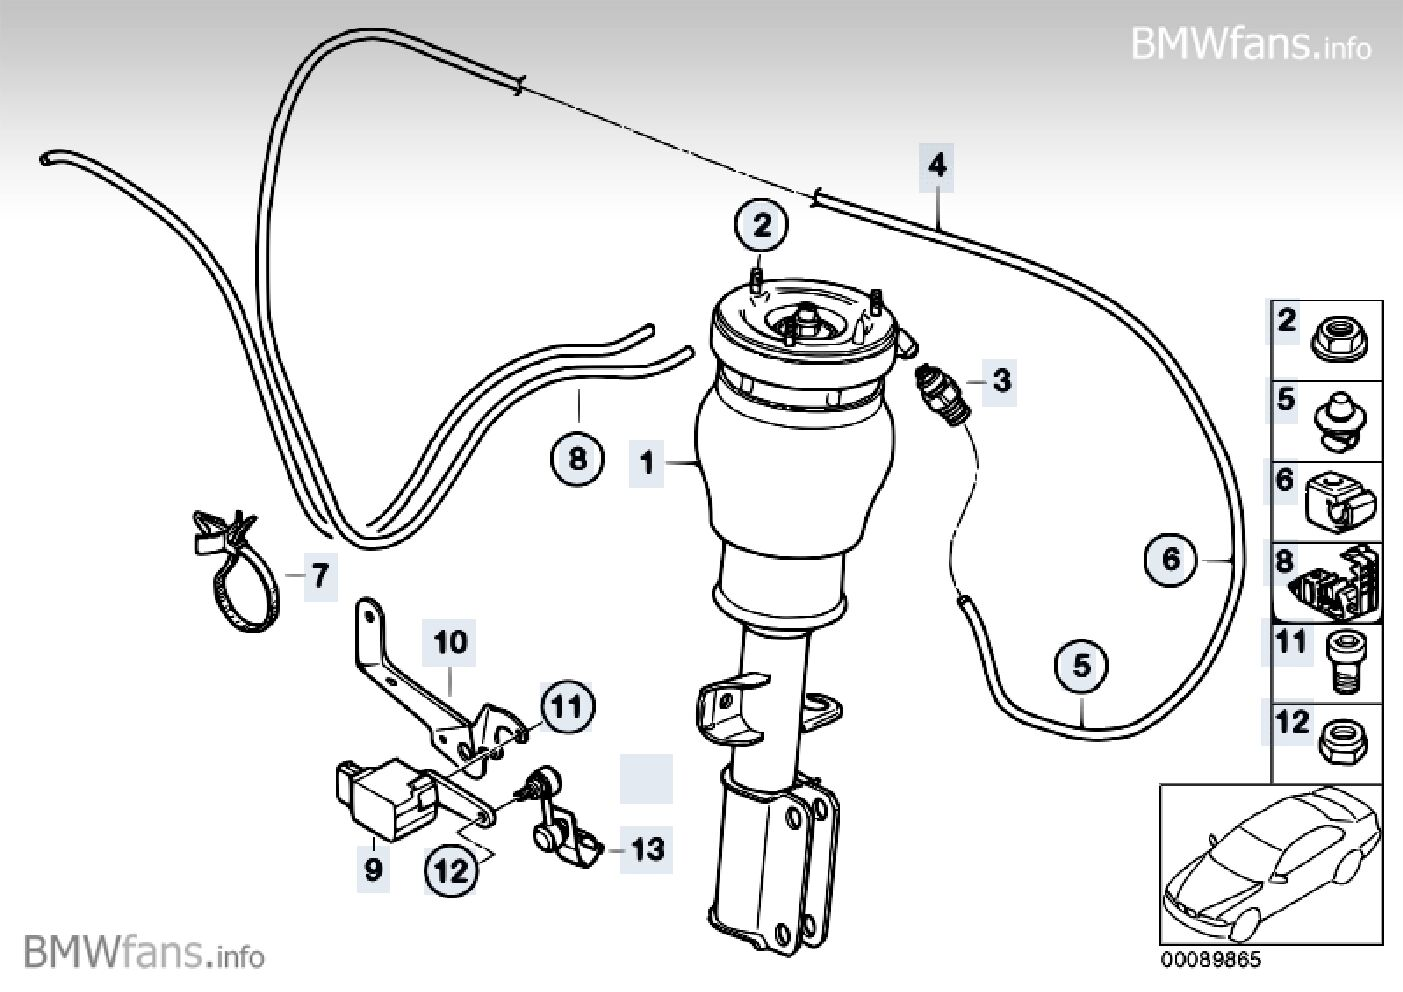 Bmw F 22 Suspension Diagram on 2002 bmw x5 fuse box diagram